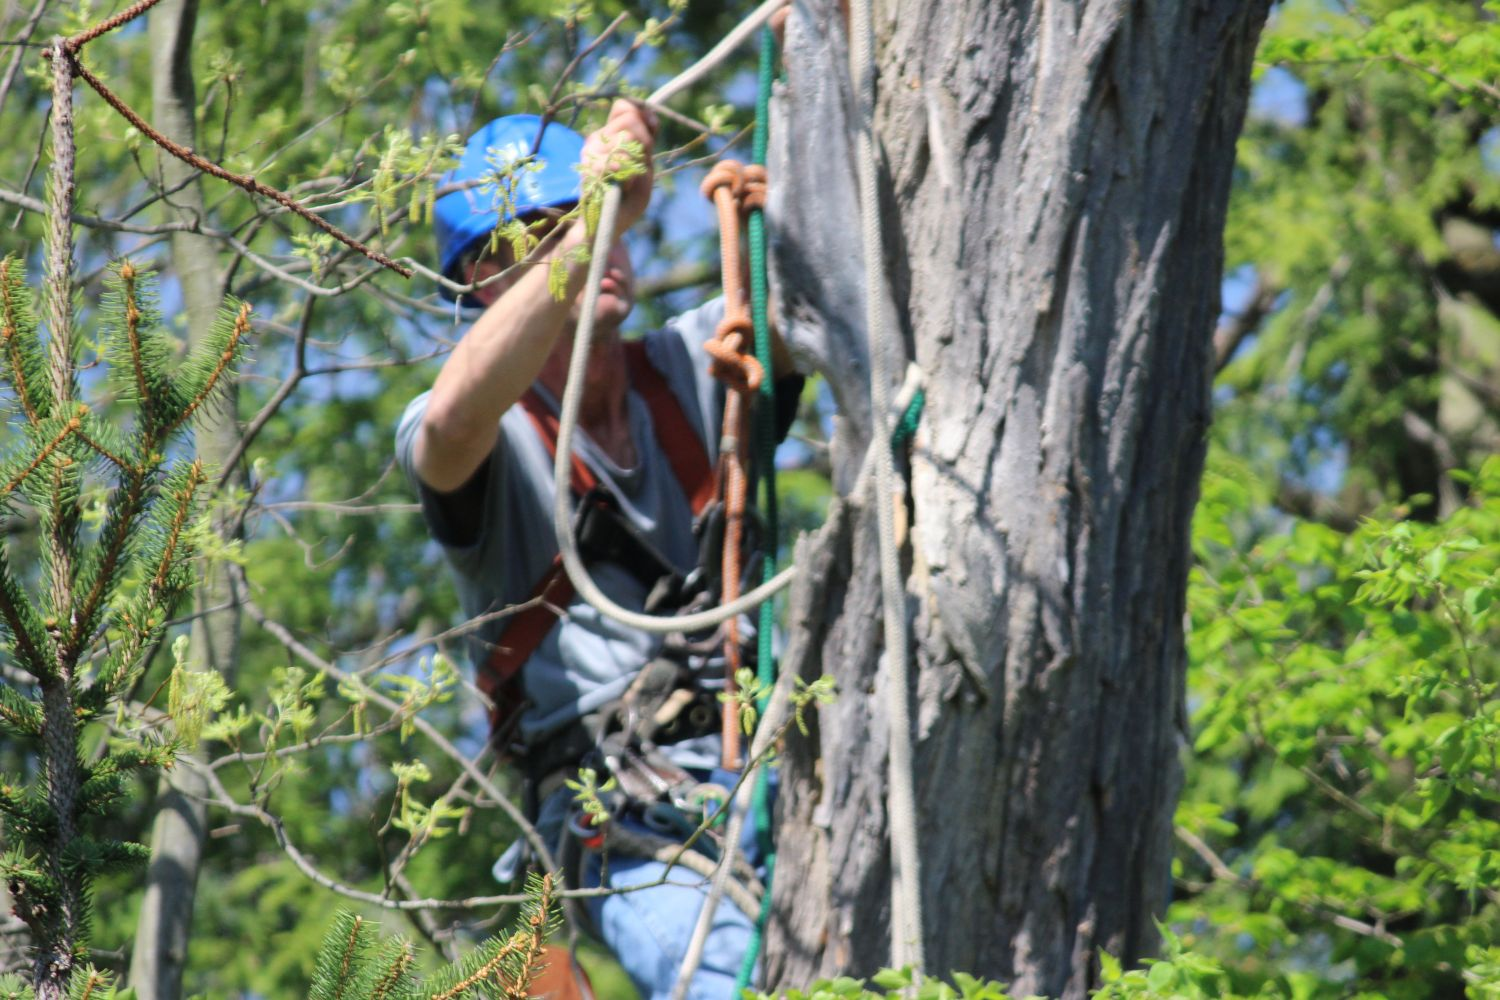 Employee working in a tree